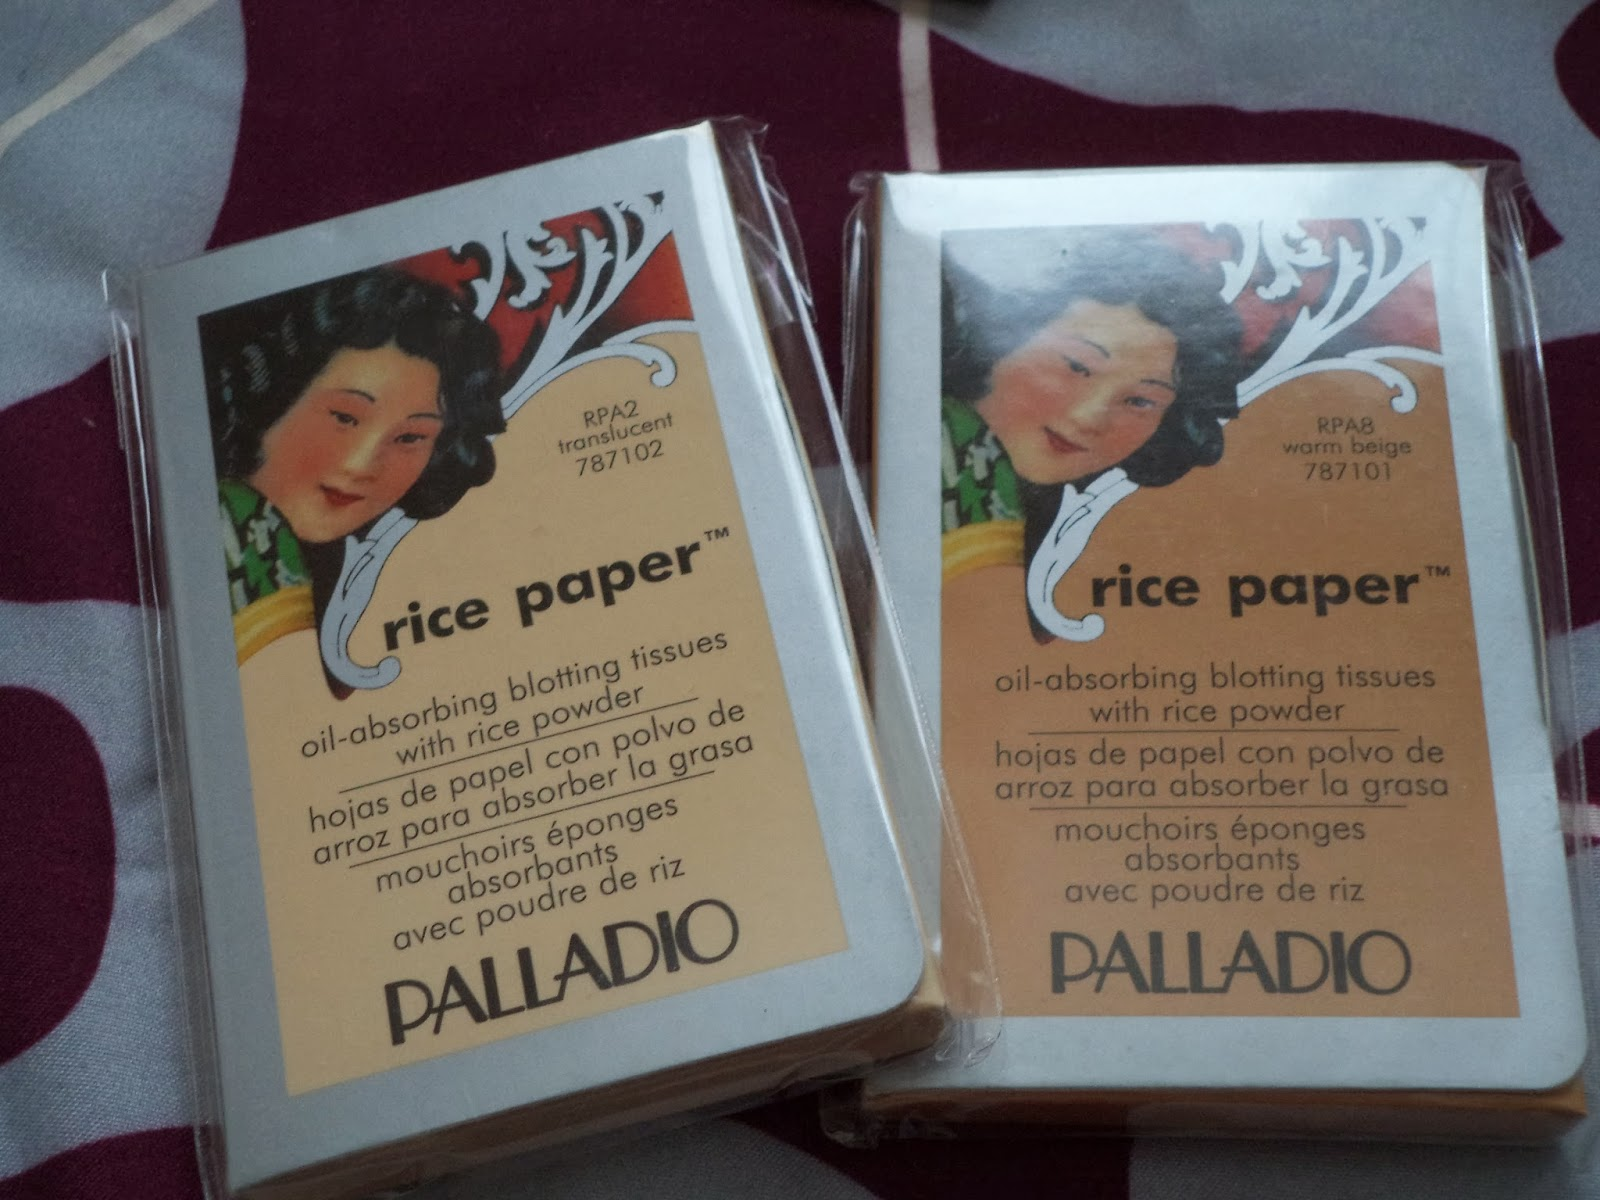 REVIEW | Palladio's Rice Paper Blotting Sheets and Oil